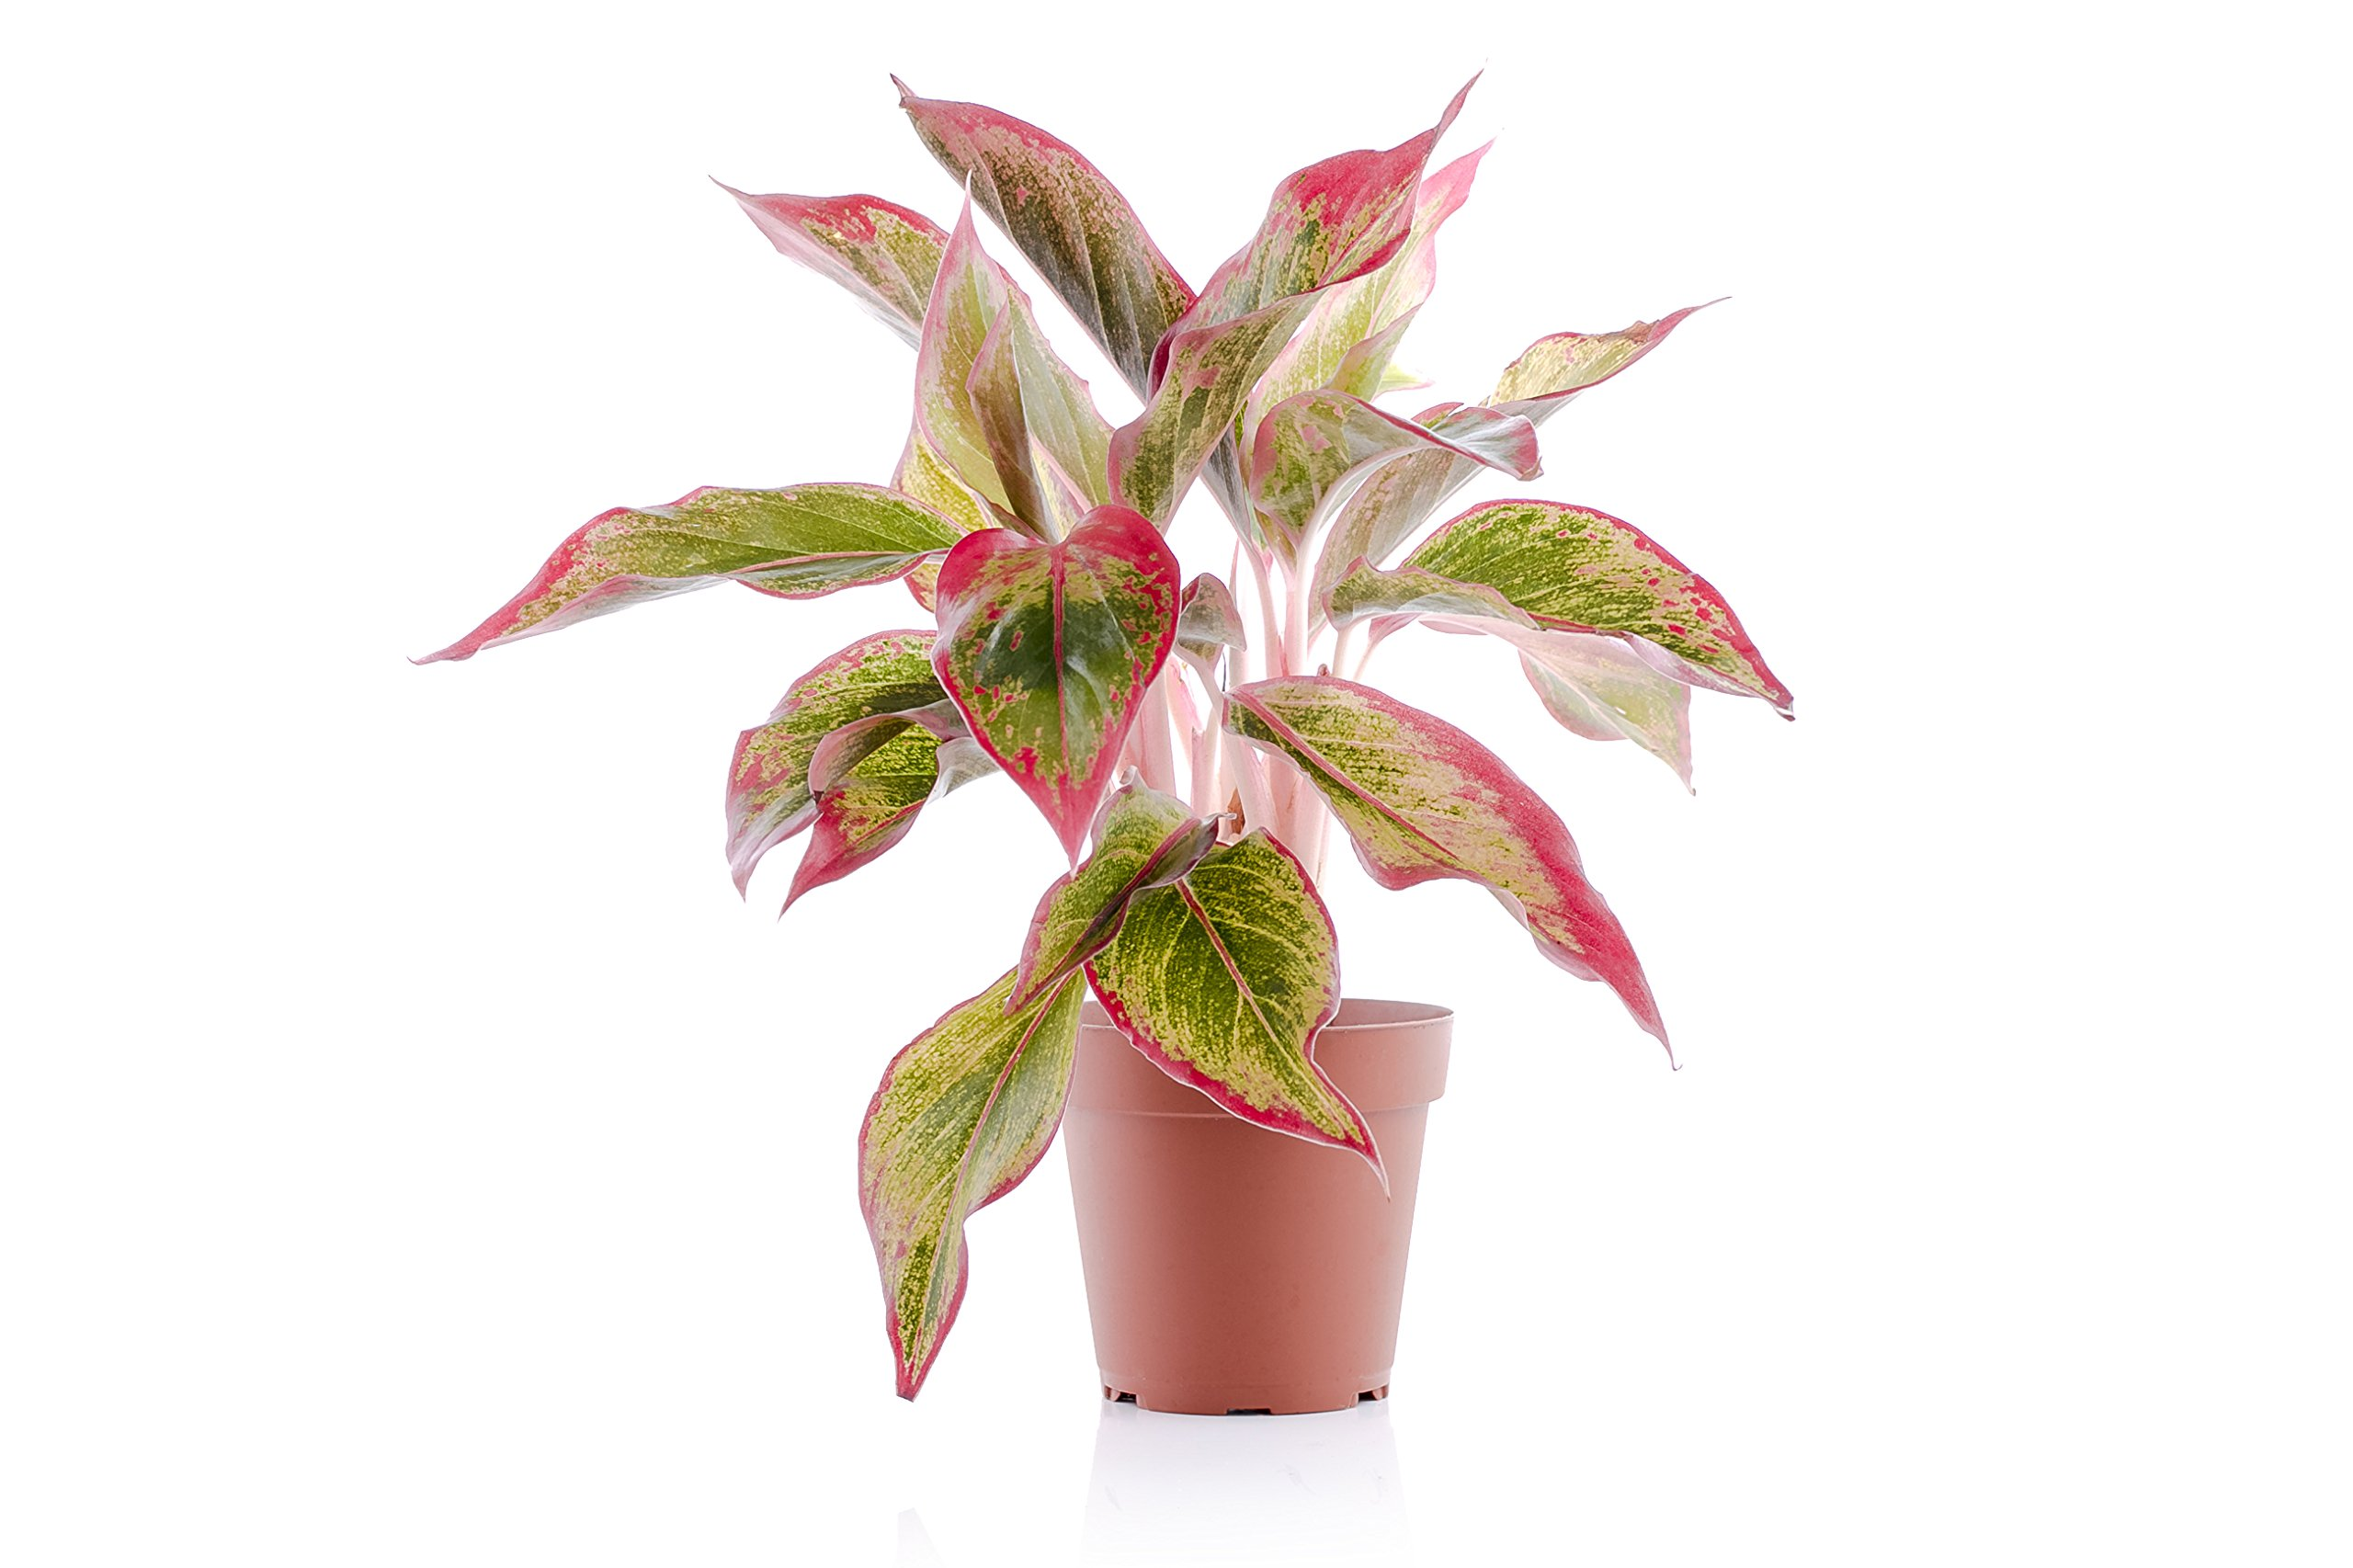 Set of 4 Indoor Plants - Live Potted Plants for Your Home or Office - Includes Red Aglaonema, Snake Plant, Philodendron, and Peace Lily - Great for Interior Decorating and Cleaning the Air by BDWS (Image #4)